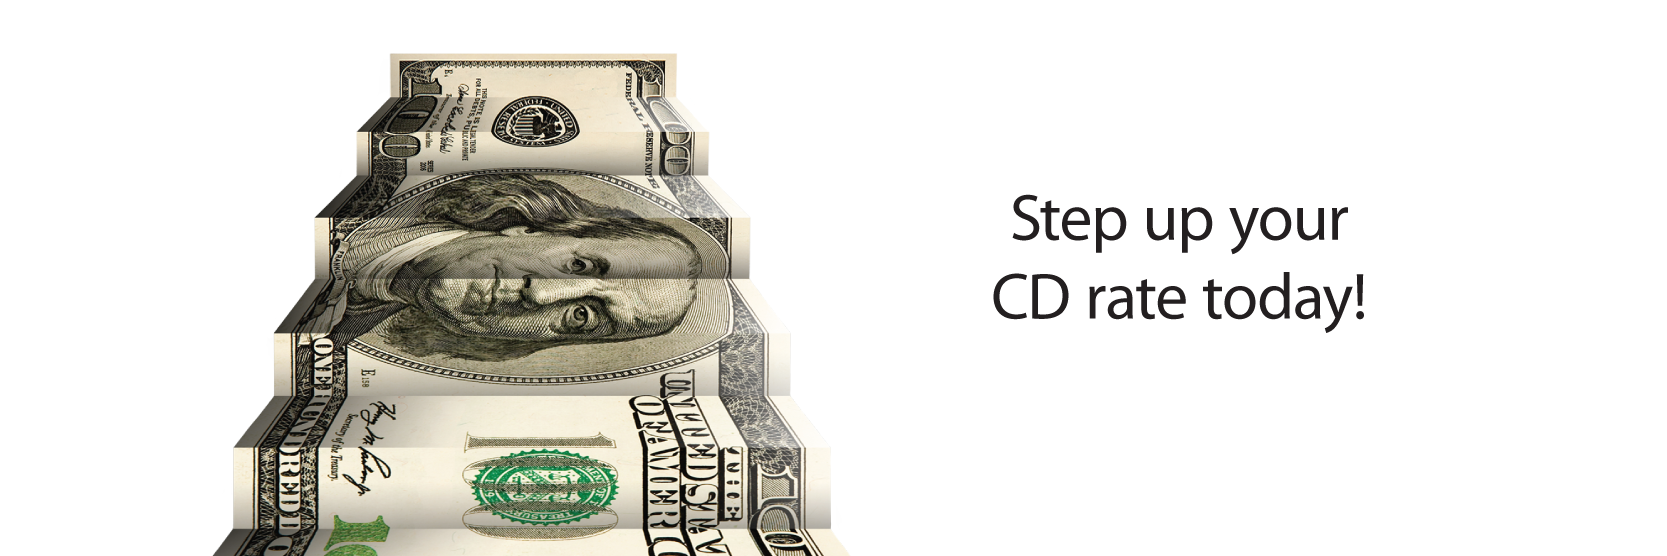 Step up your CD rate today!